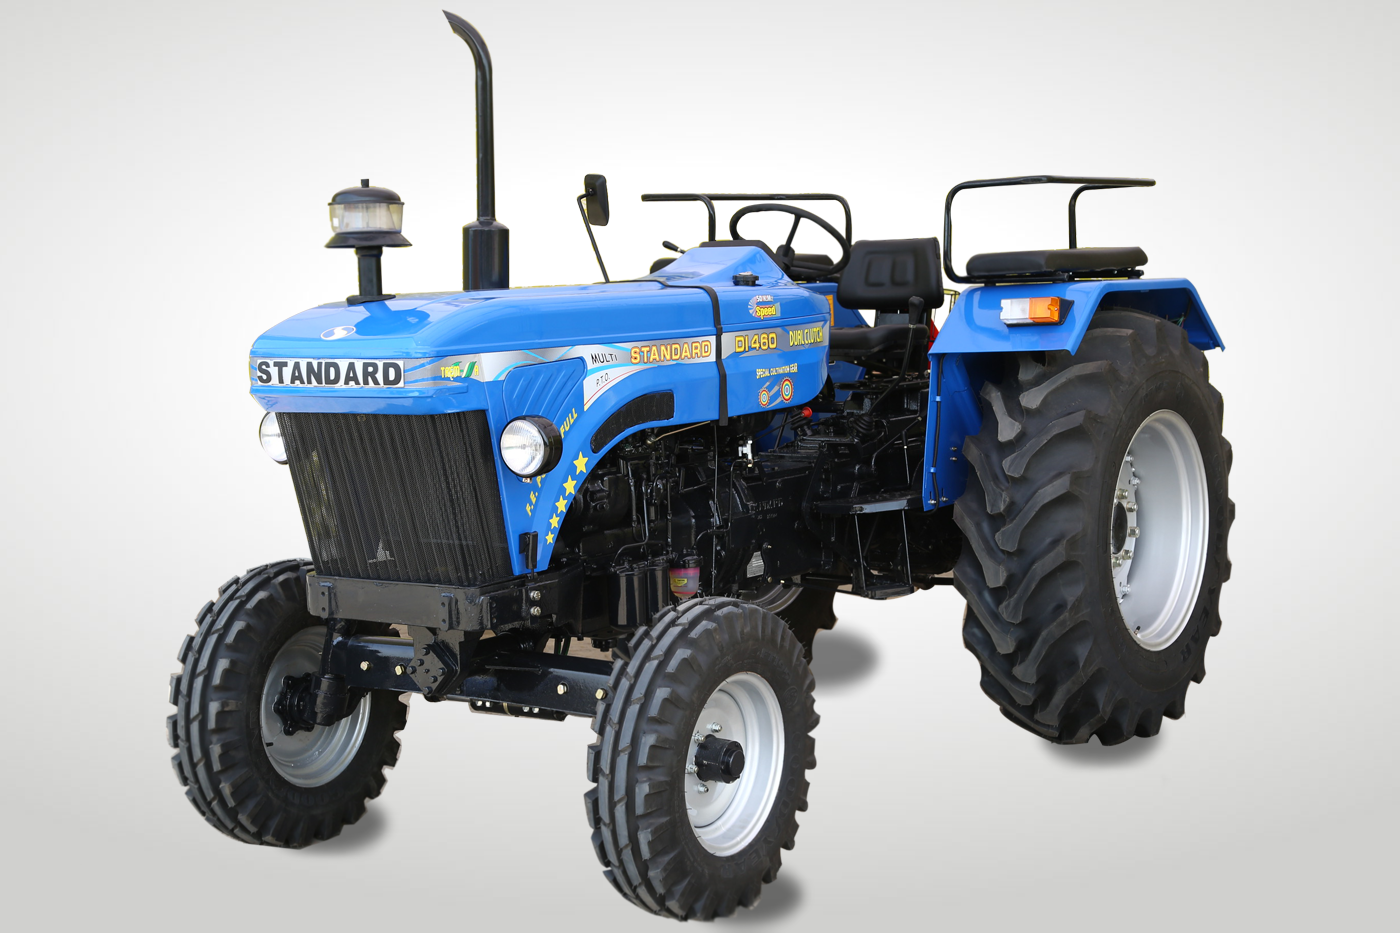 Standard DI 460 Tractor On-road price in India. Standard DI 460 Tractor Features, specifications, and full video review